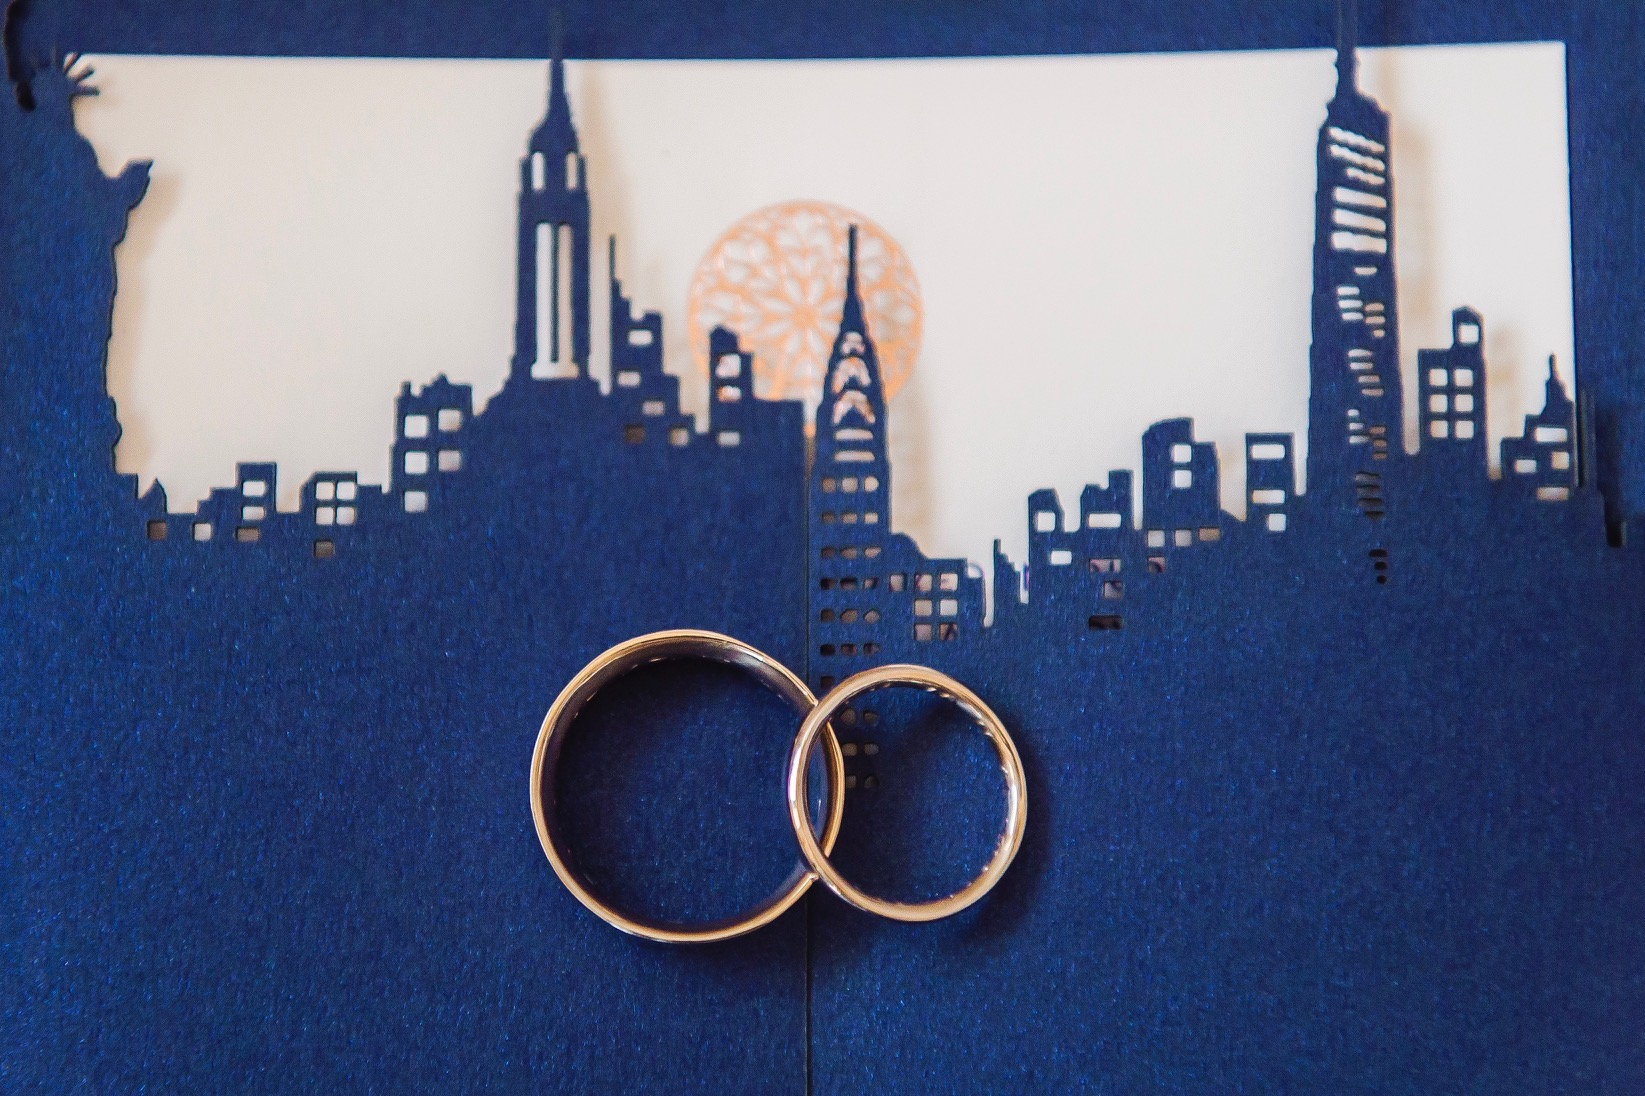 Marineé and Andrew's rings - made by each other in my  Wedding Ring Workshop . Photo:  A Day of Bliss Photography